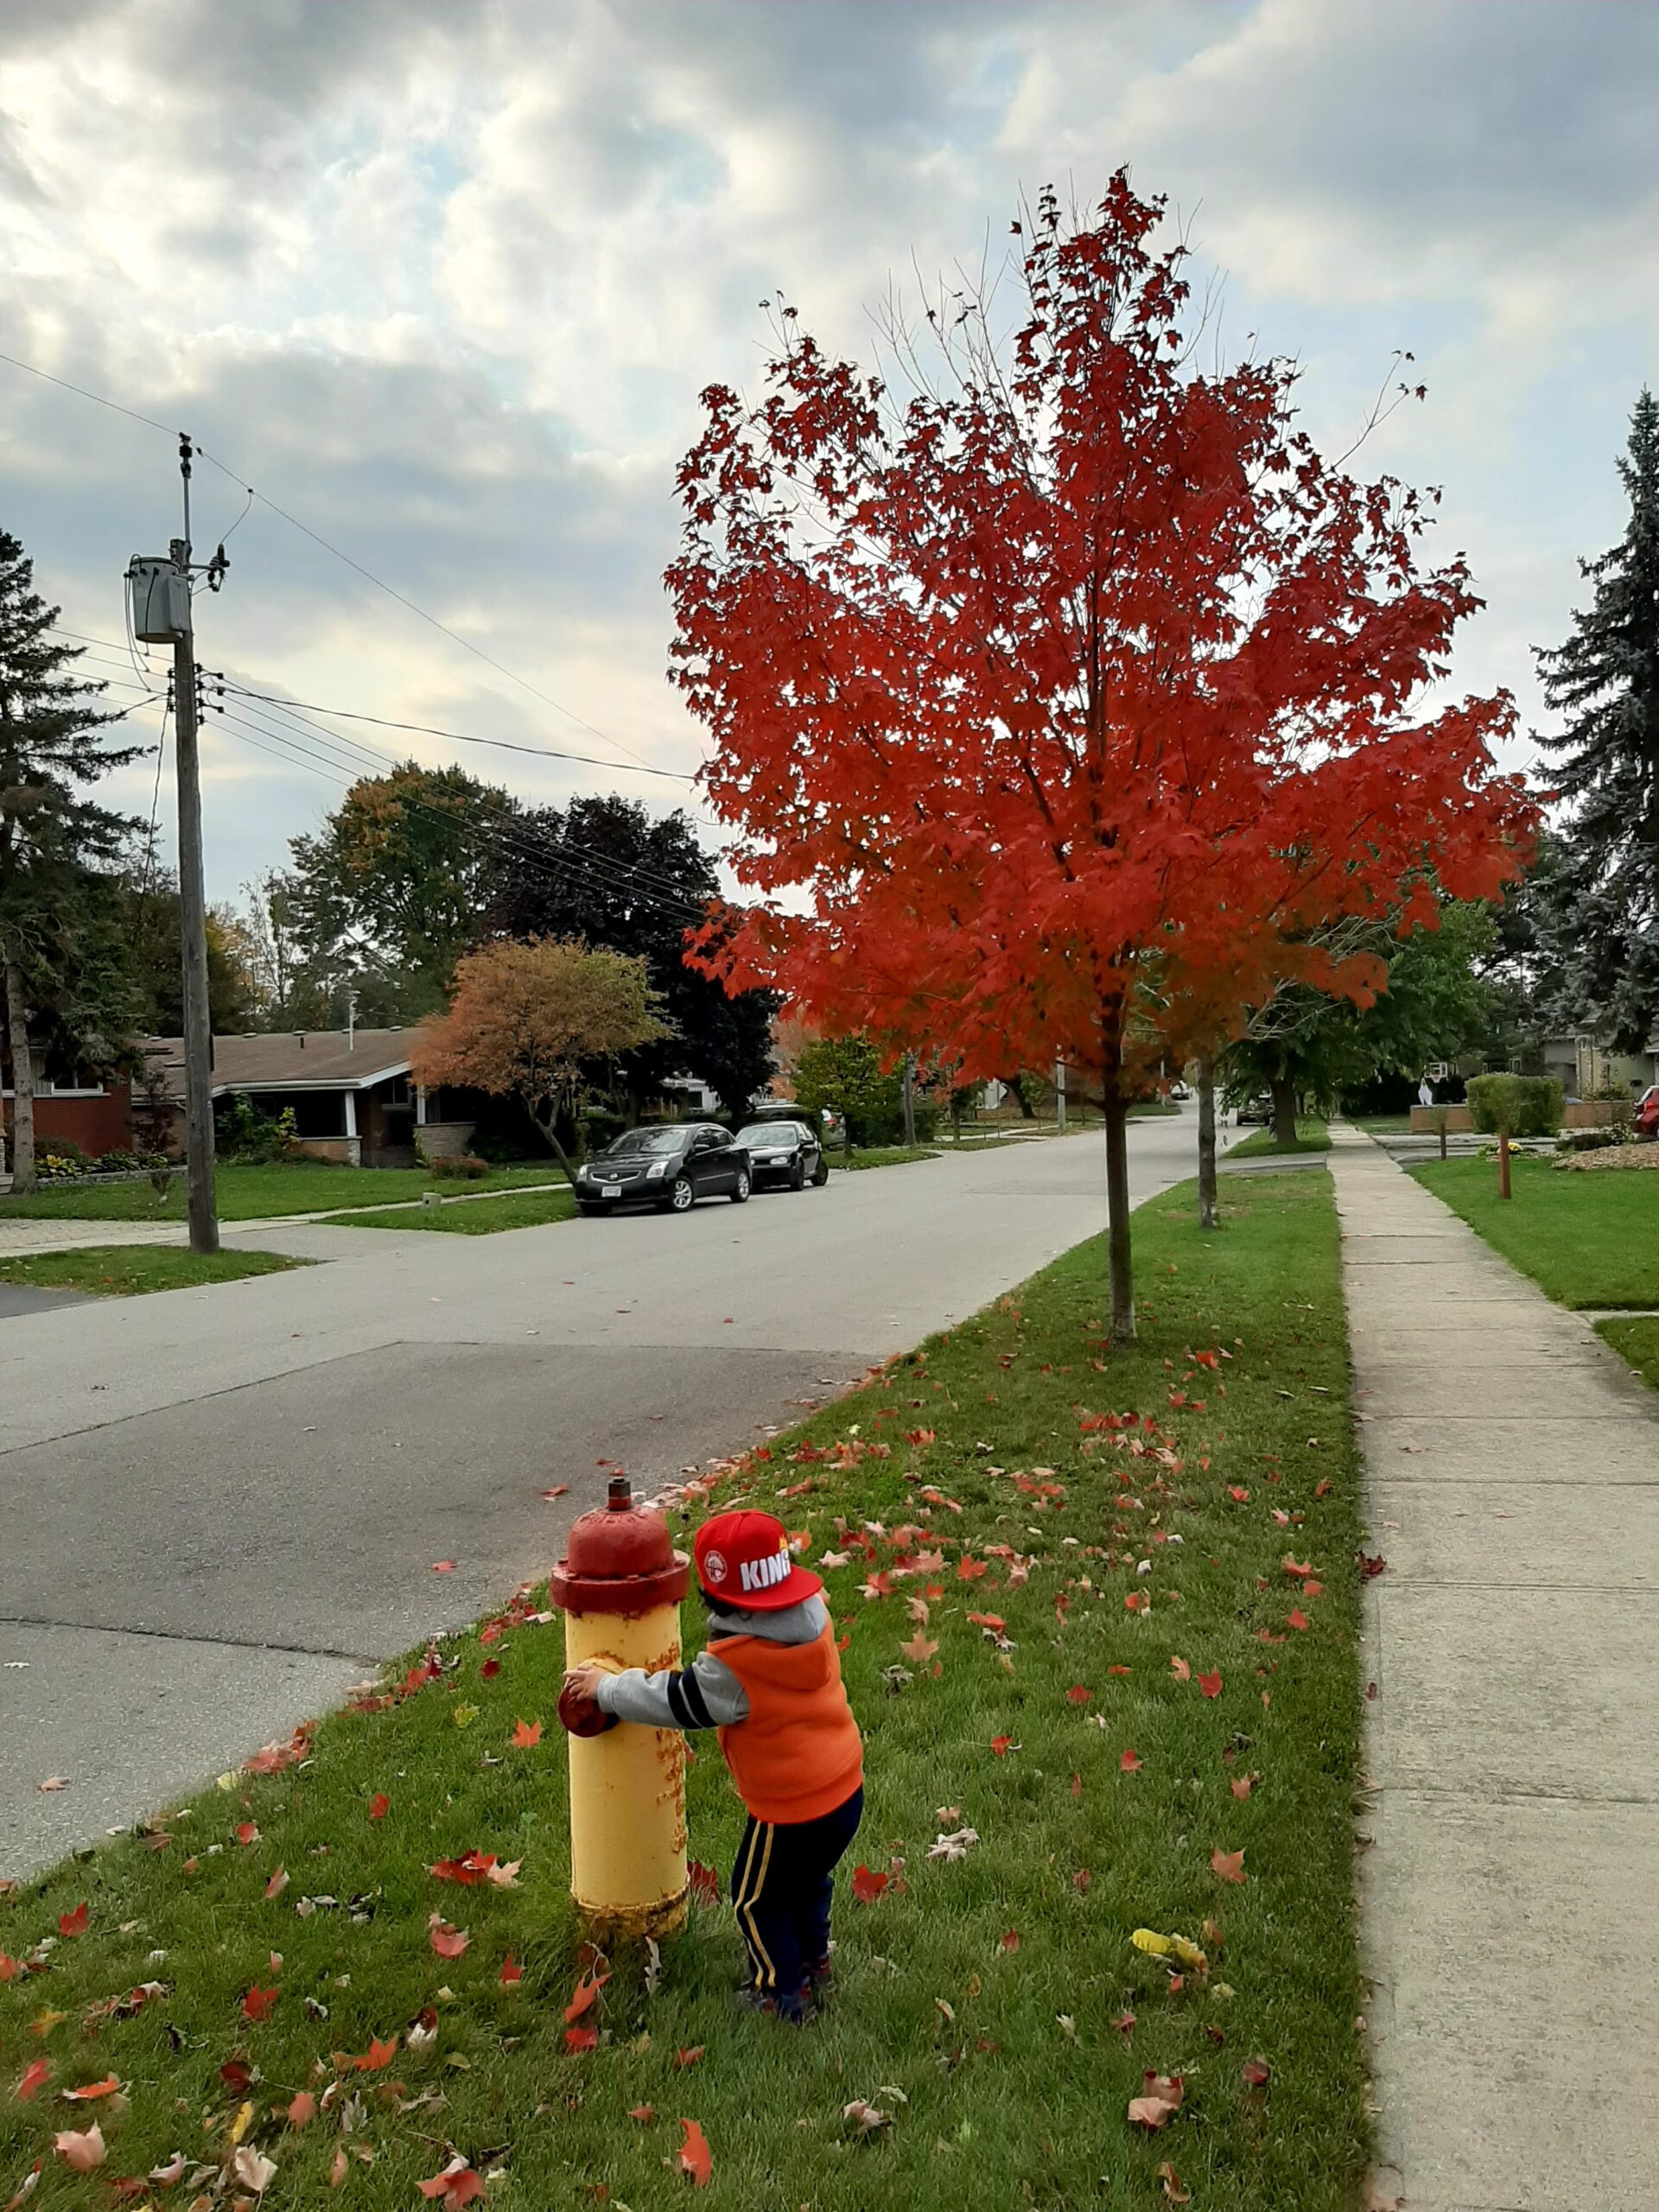 toddler playing on a fire hydrant next to a red tree